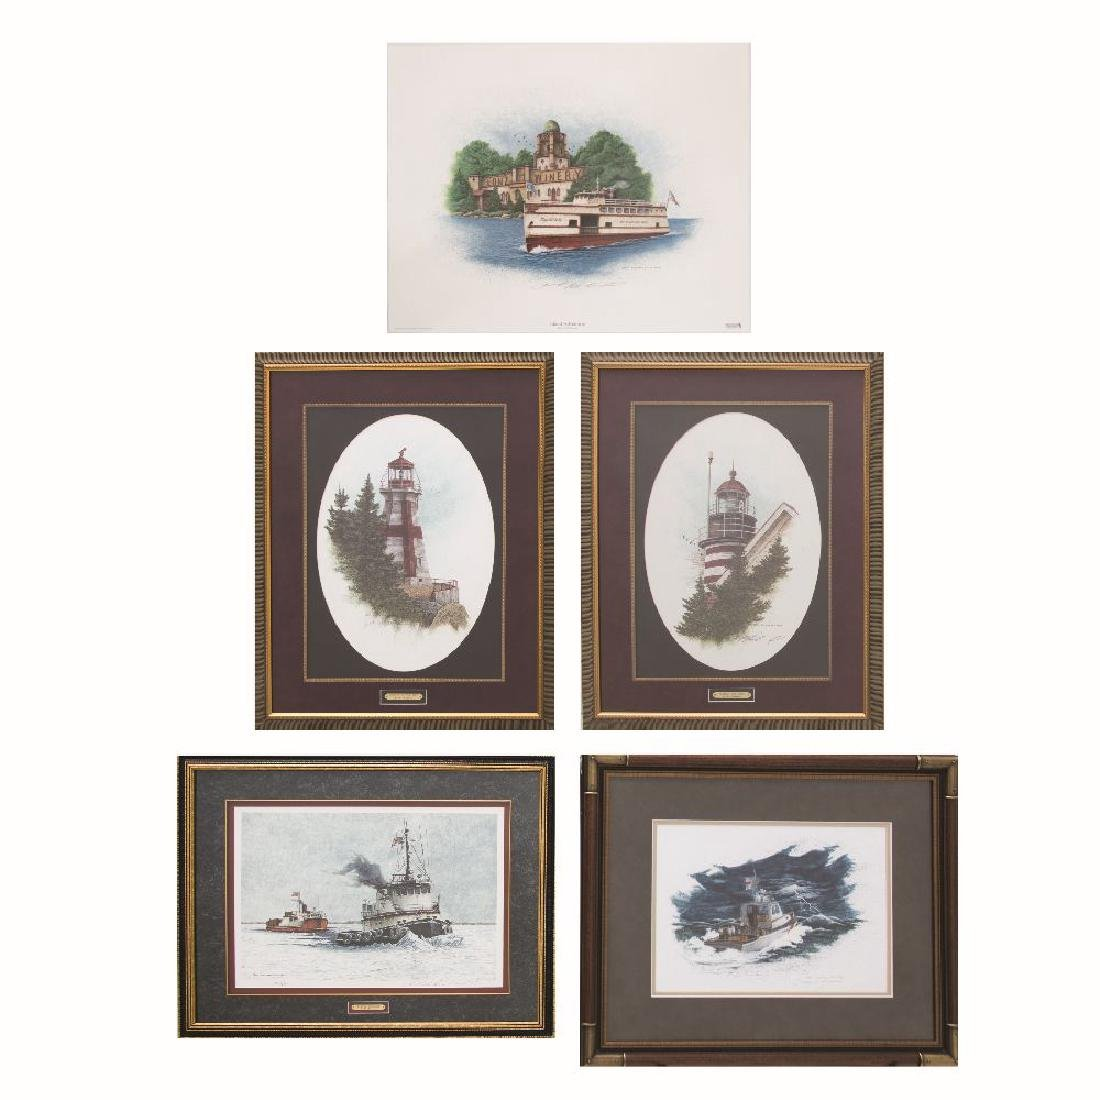 A Group of Five Lithographs and Original Watercolor by